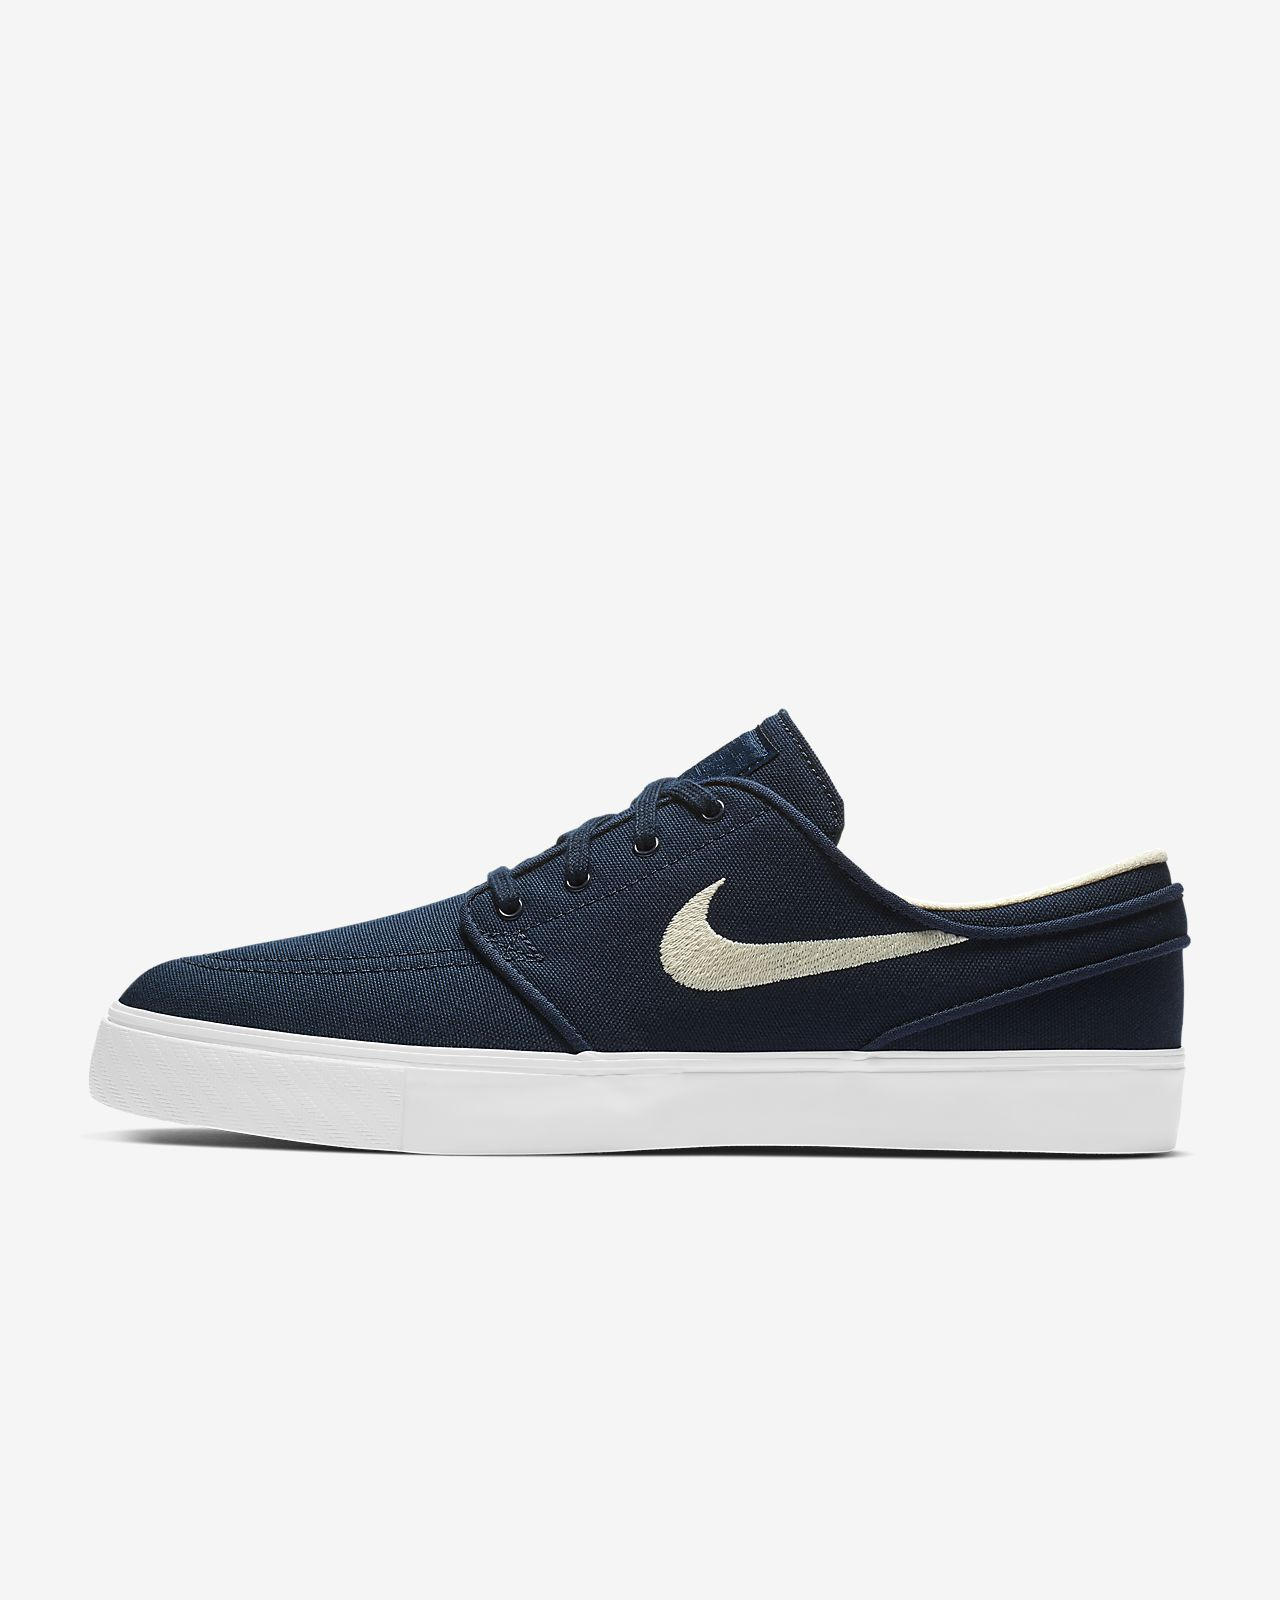 Nike SB Zoom Stefan Janoski Canvas Men's Skate Shoe